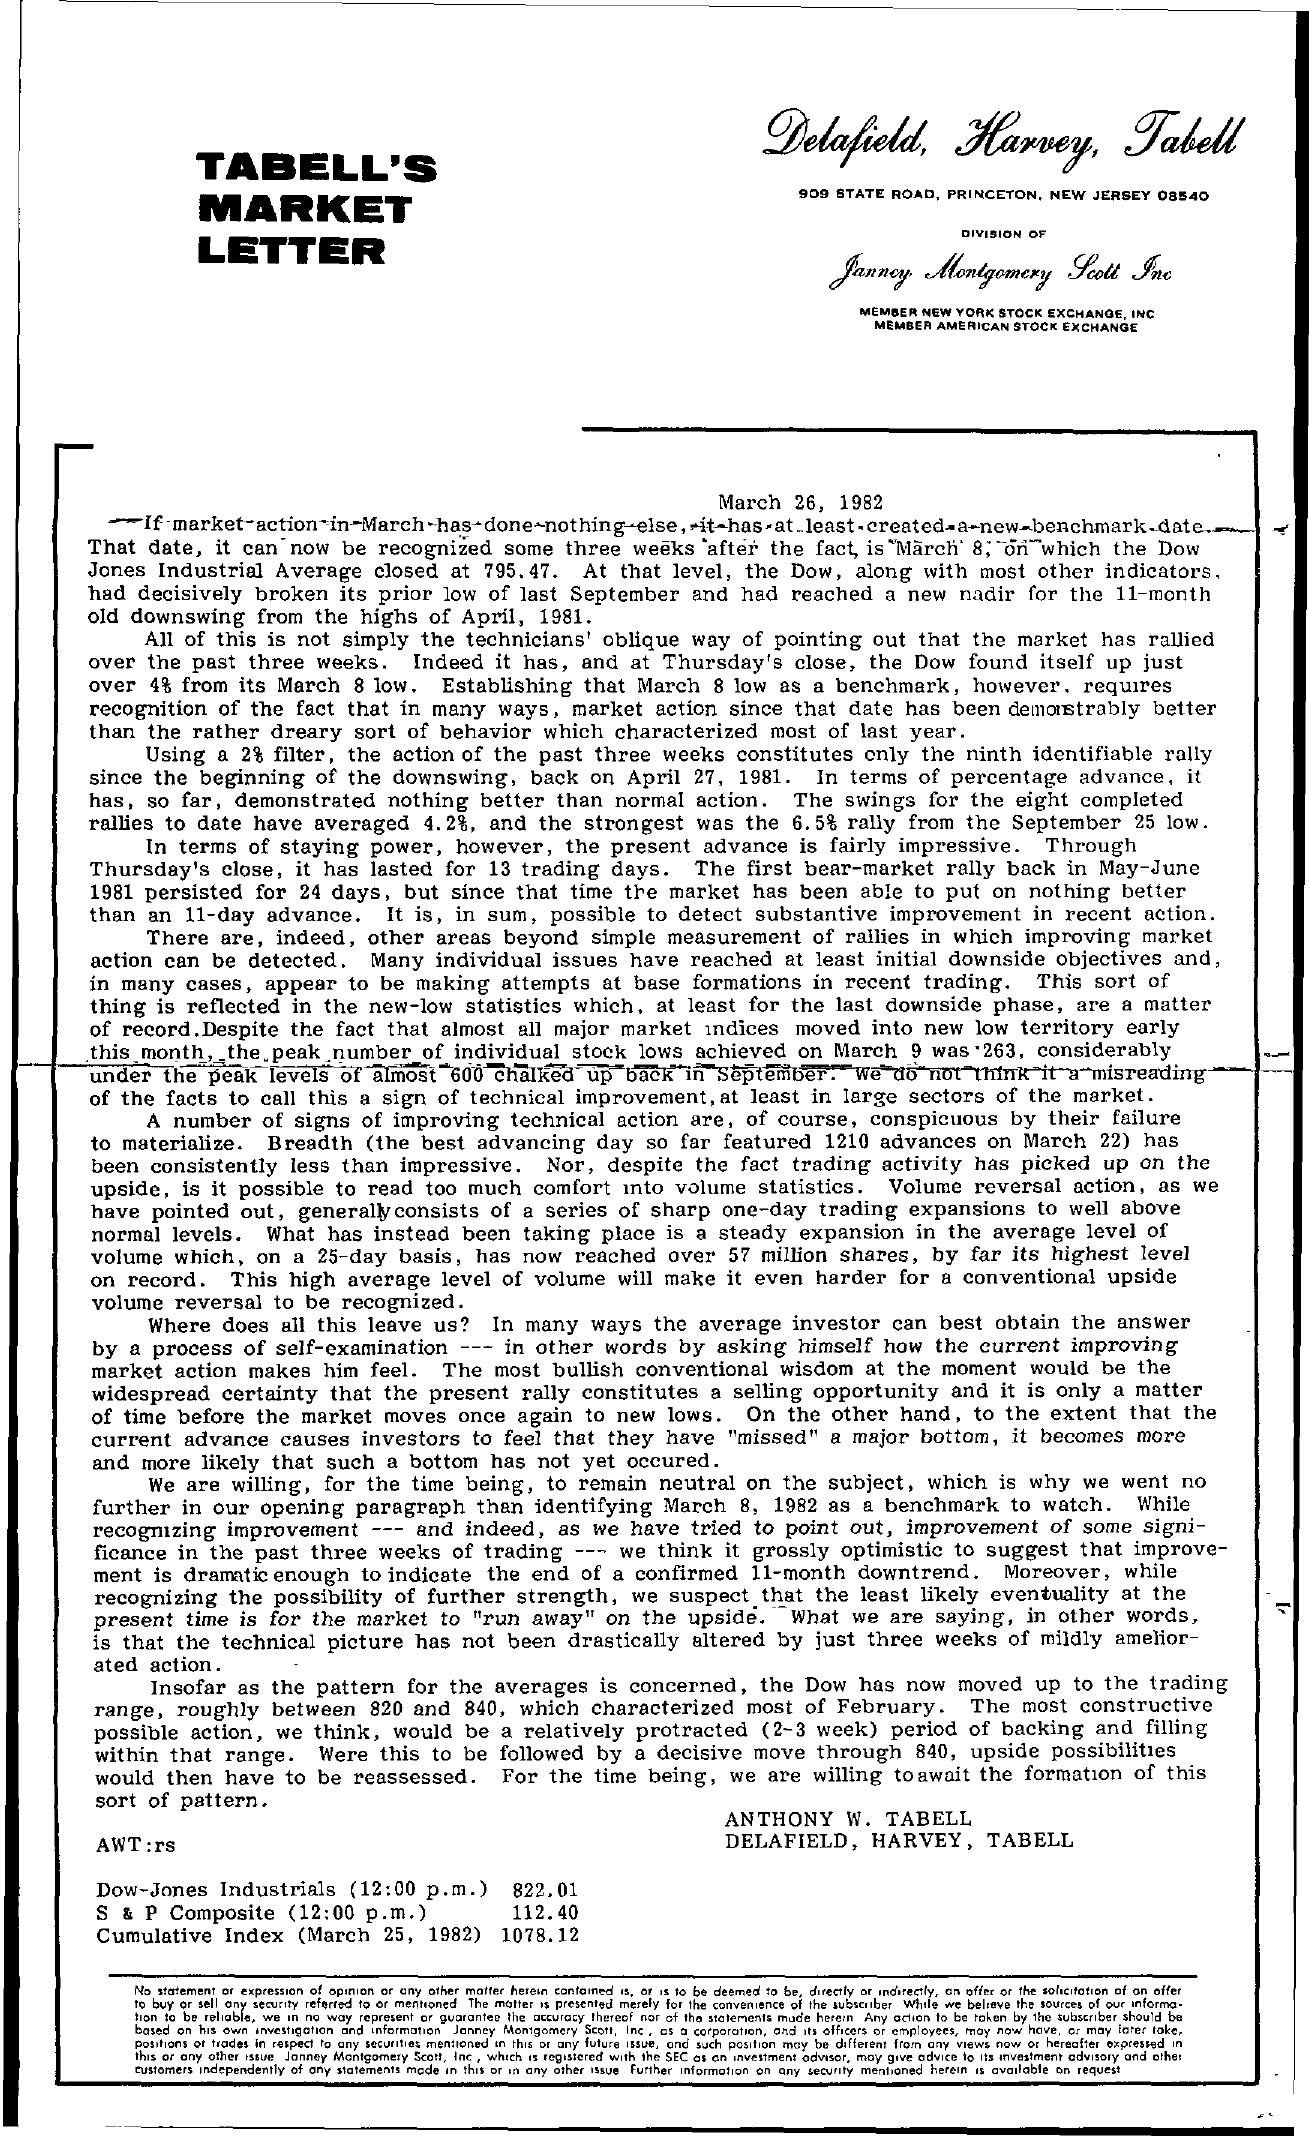 Tabell's Market Letter - March 26, 1982